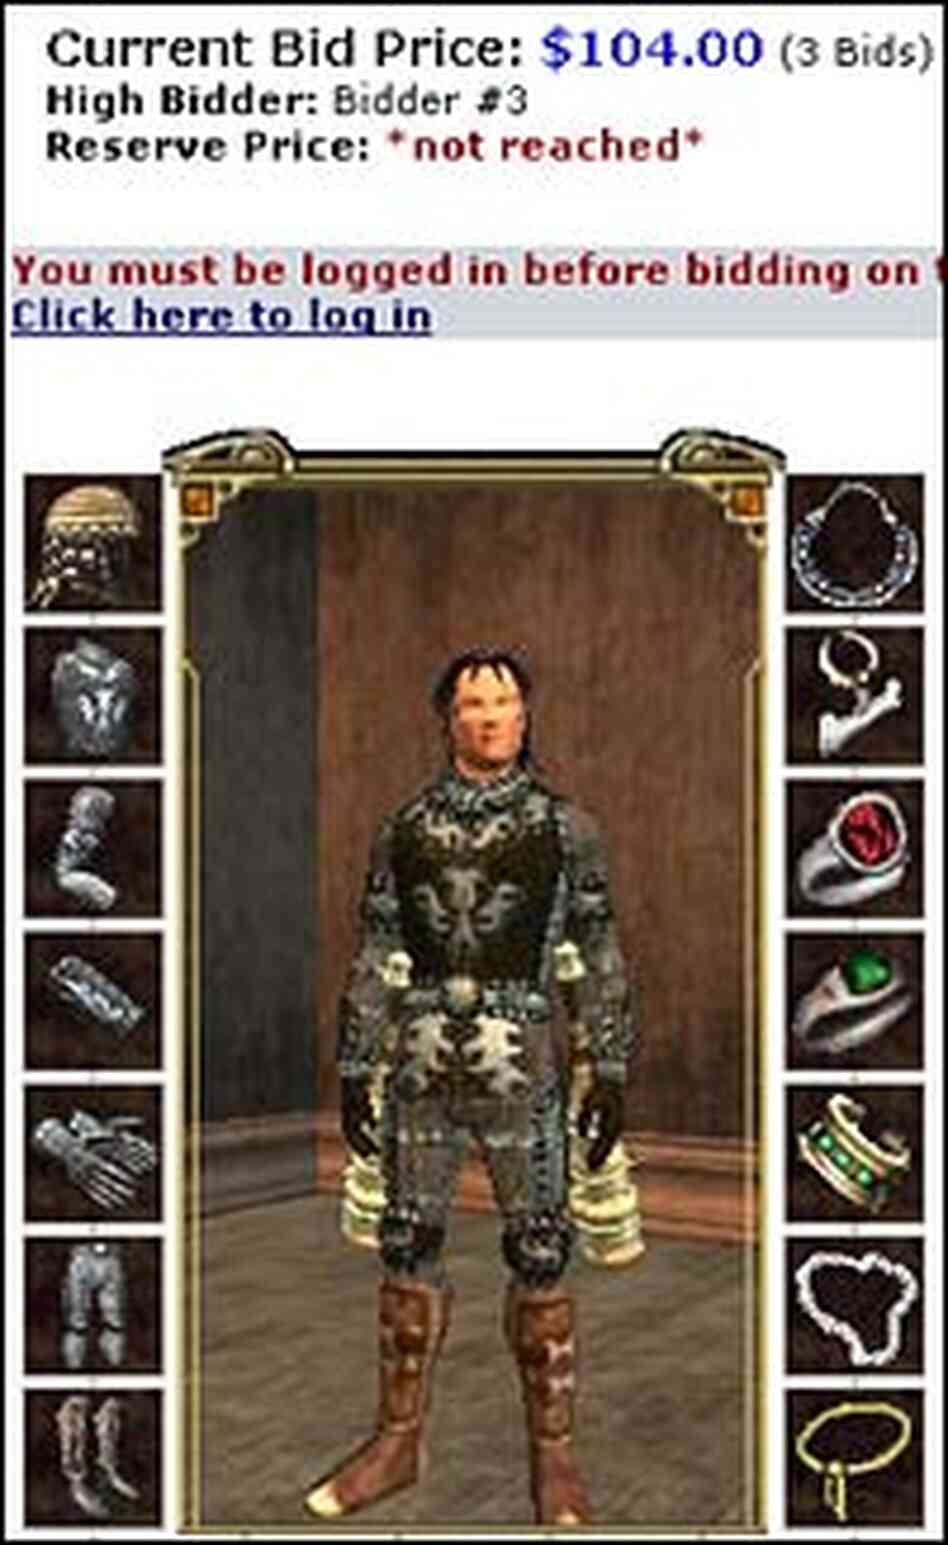 An online auction for a virtual human character in 'EverQuest II.'